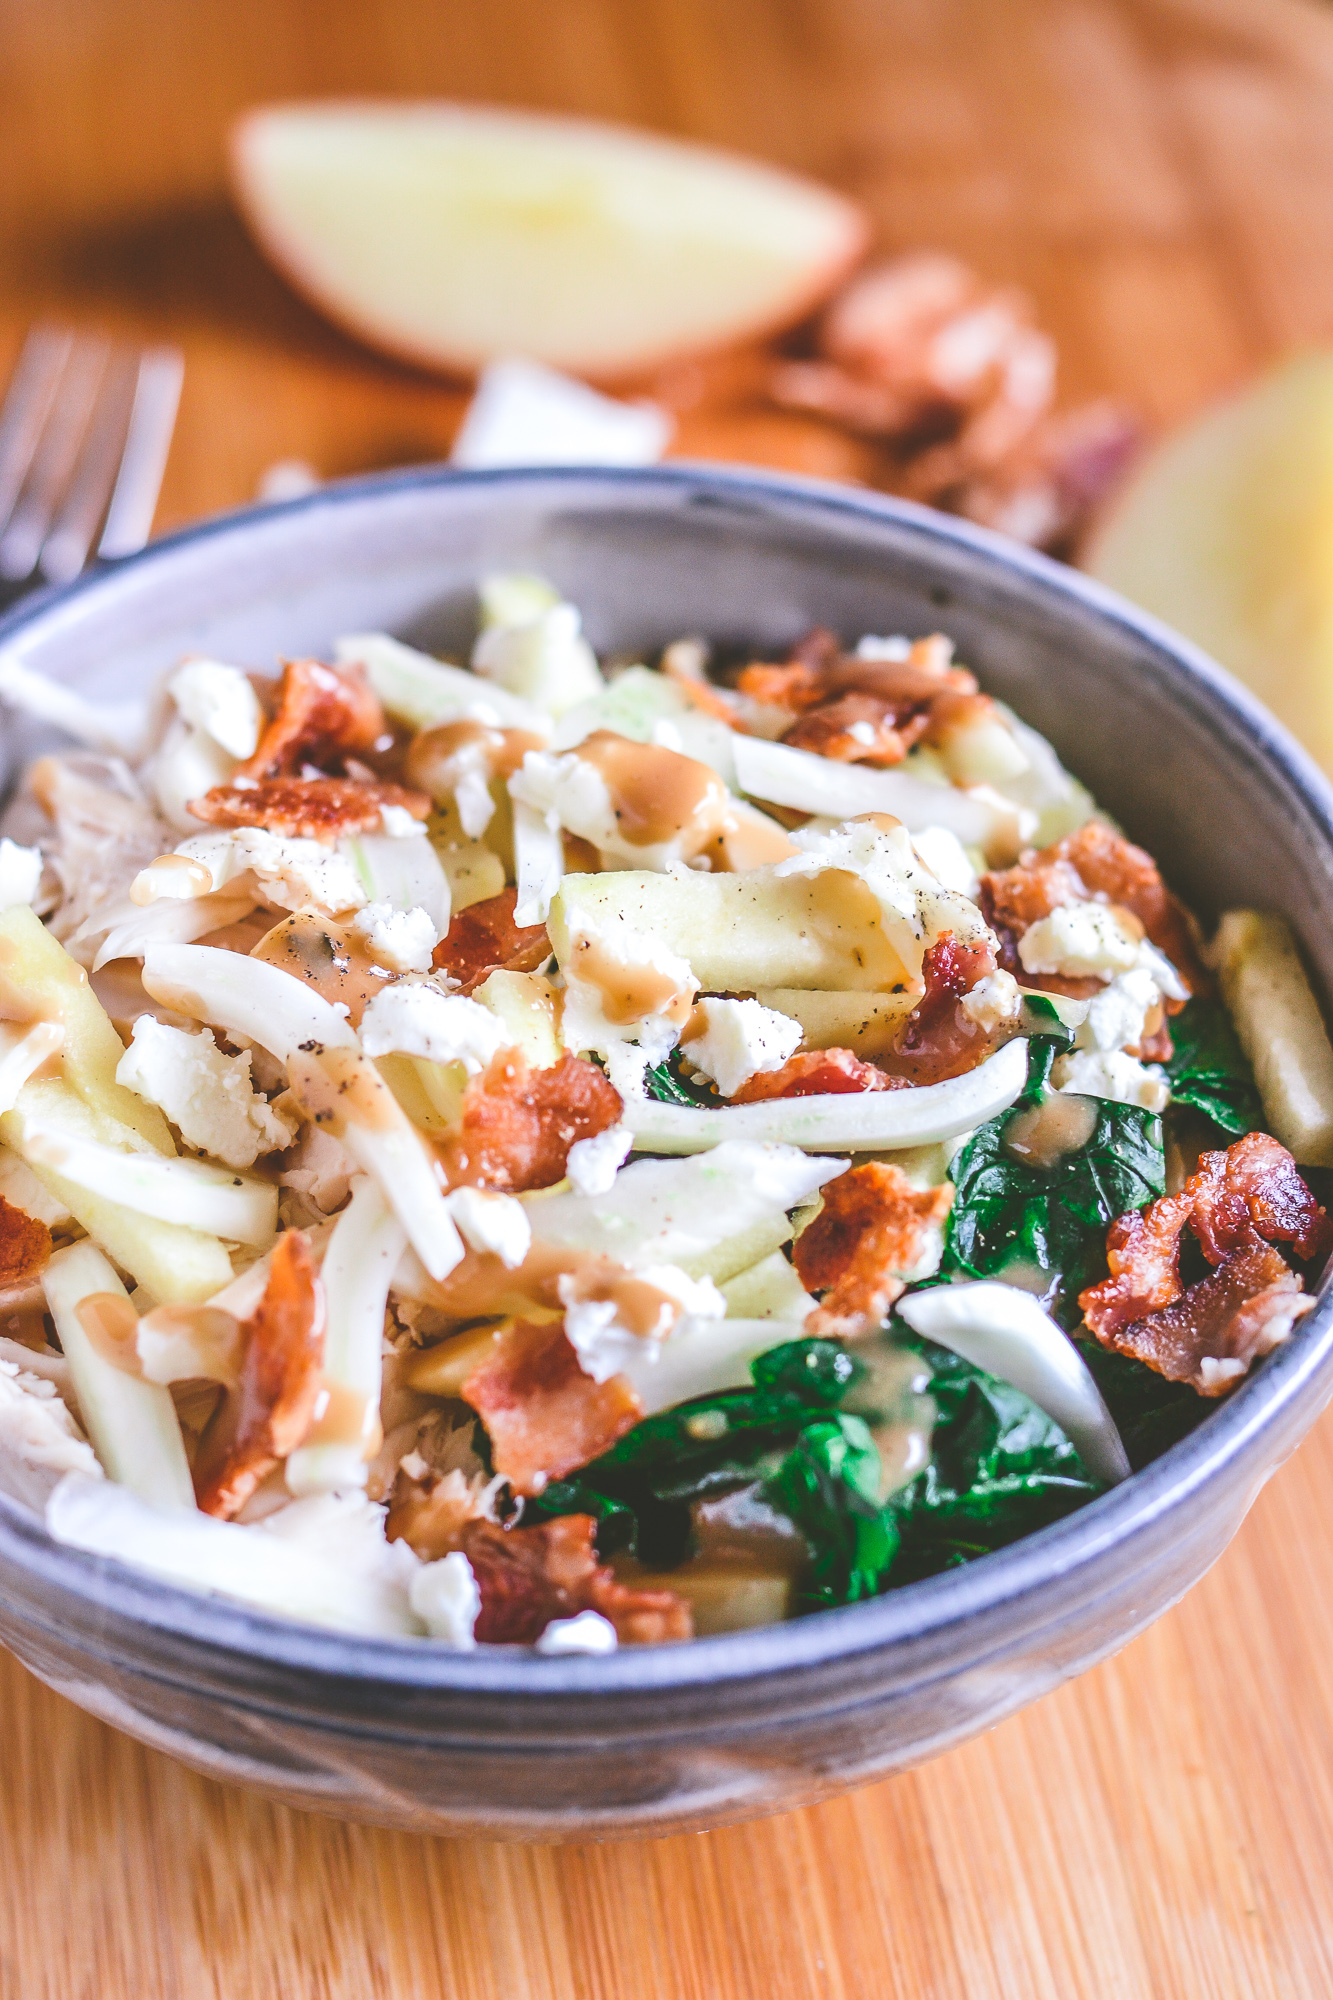 Sweet and Savory Warm Chicken, Apple and Fennel Power Bowls | Healthy Food | Real Food | BySarahRae.com